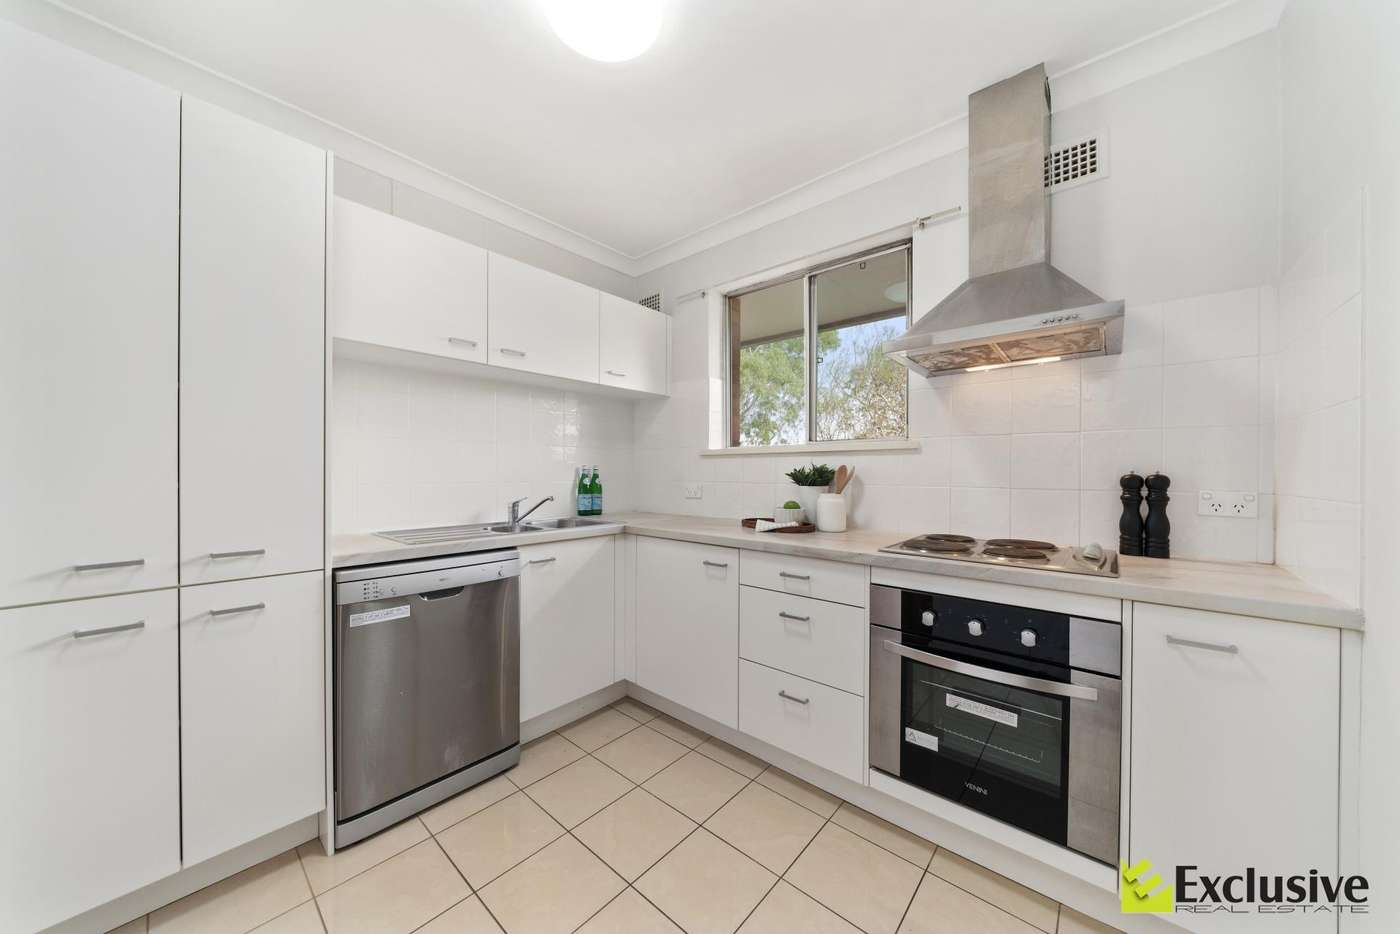 Fifth view of Homely apartment listing, 26/58 Orpington Street, Ashfield NSW 2131